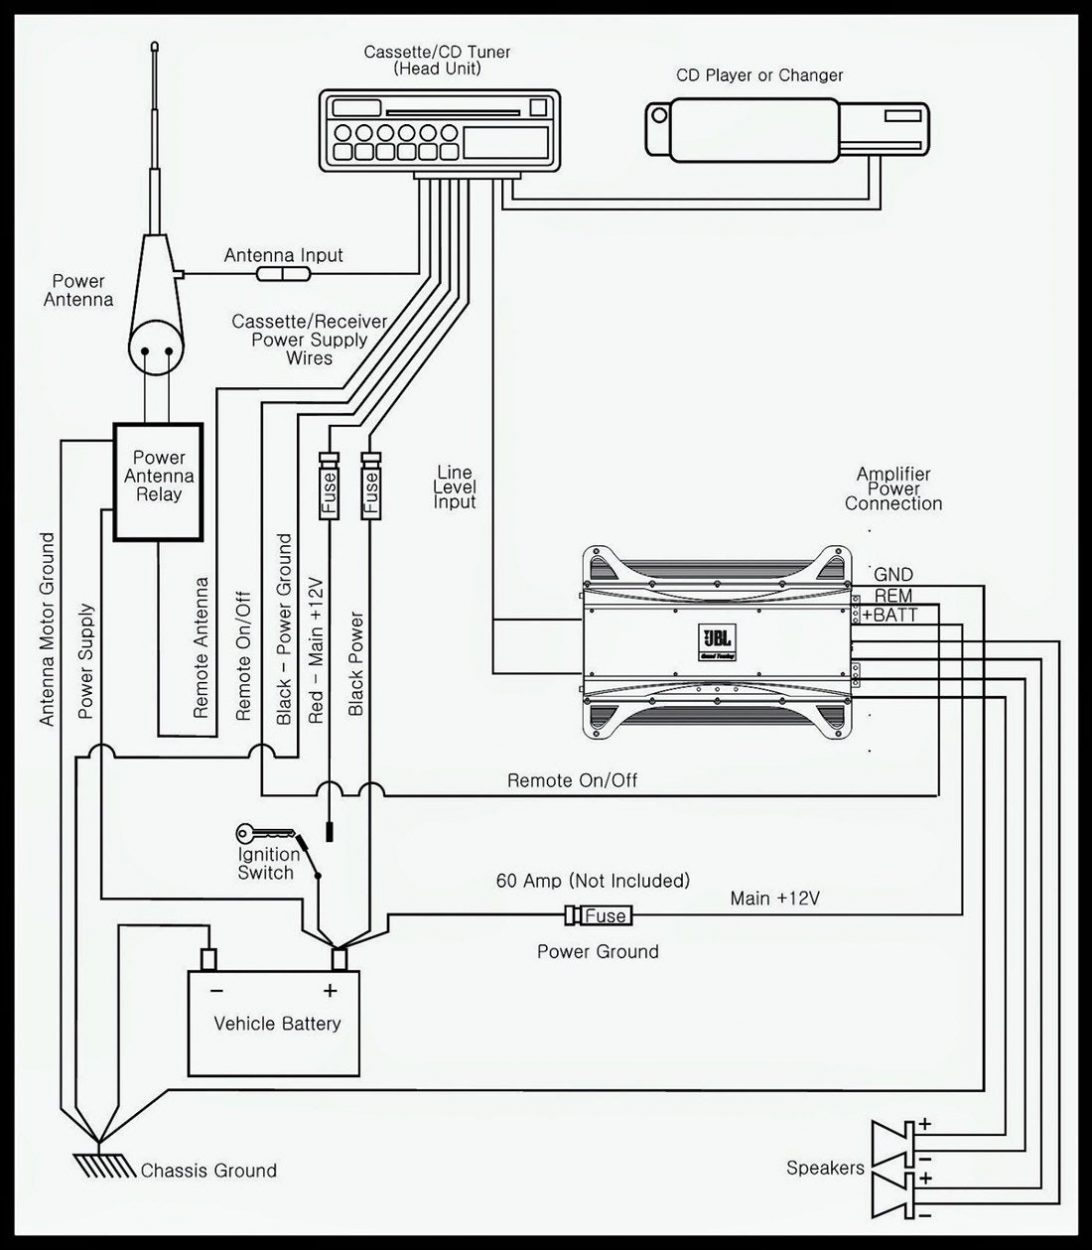 Power Supply Wiring Diagram